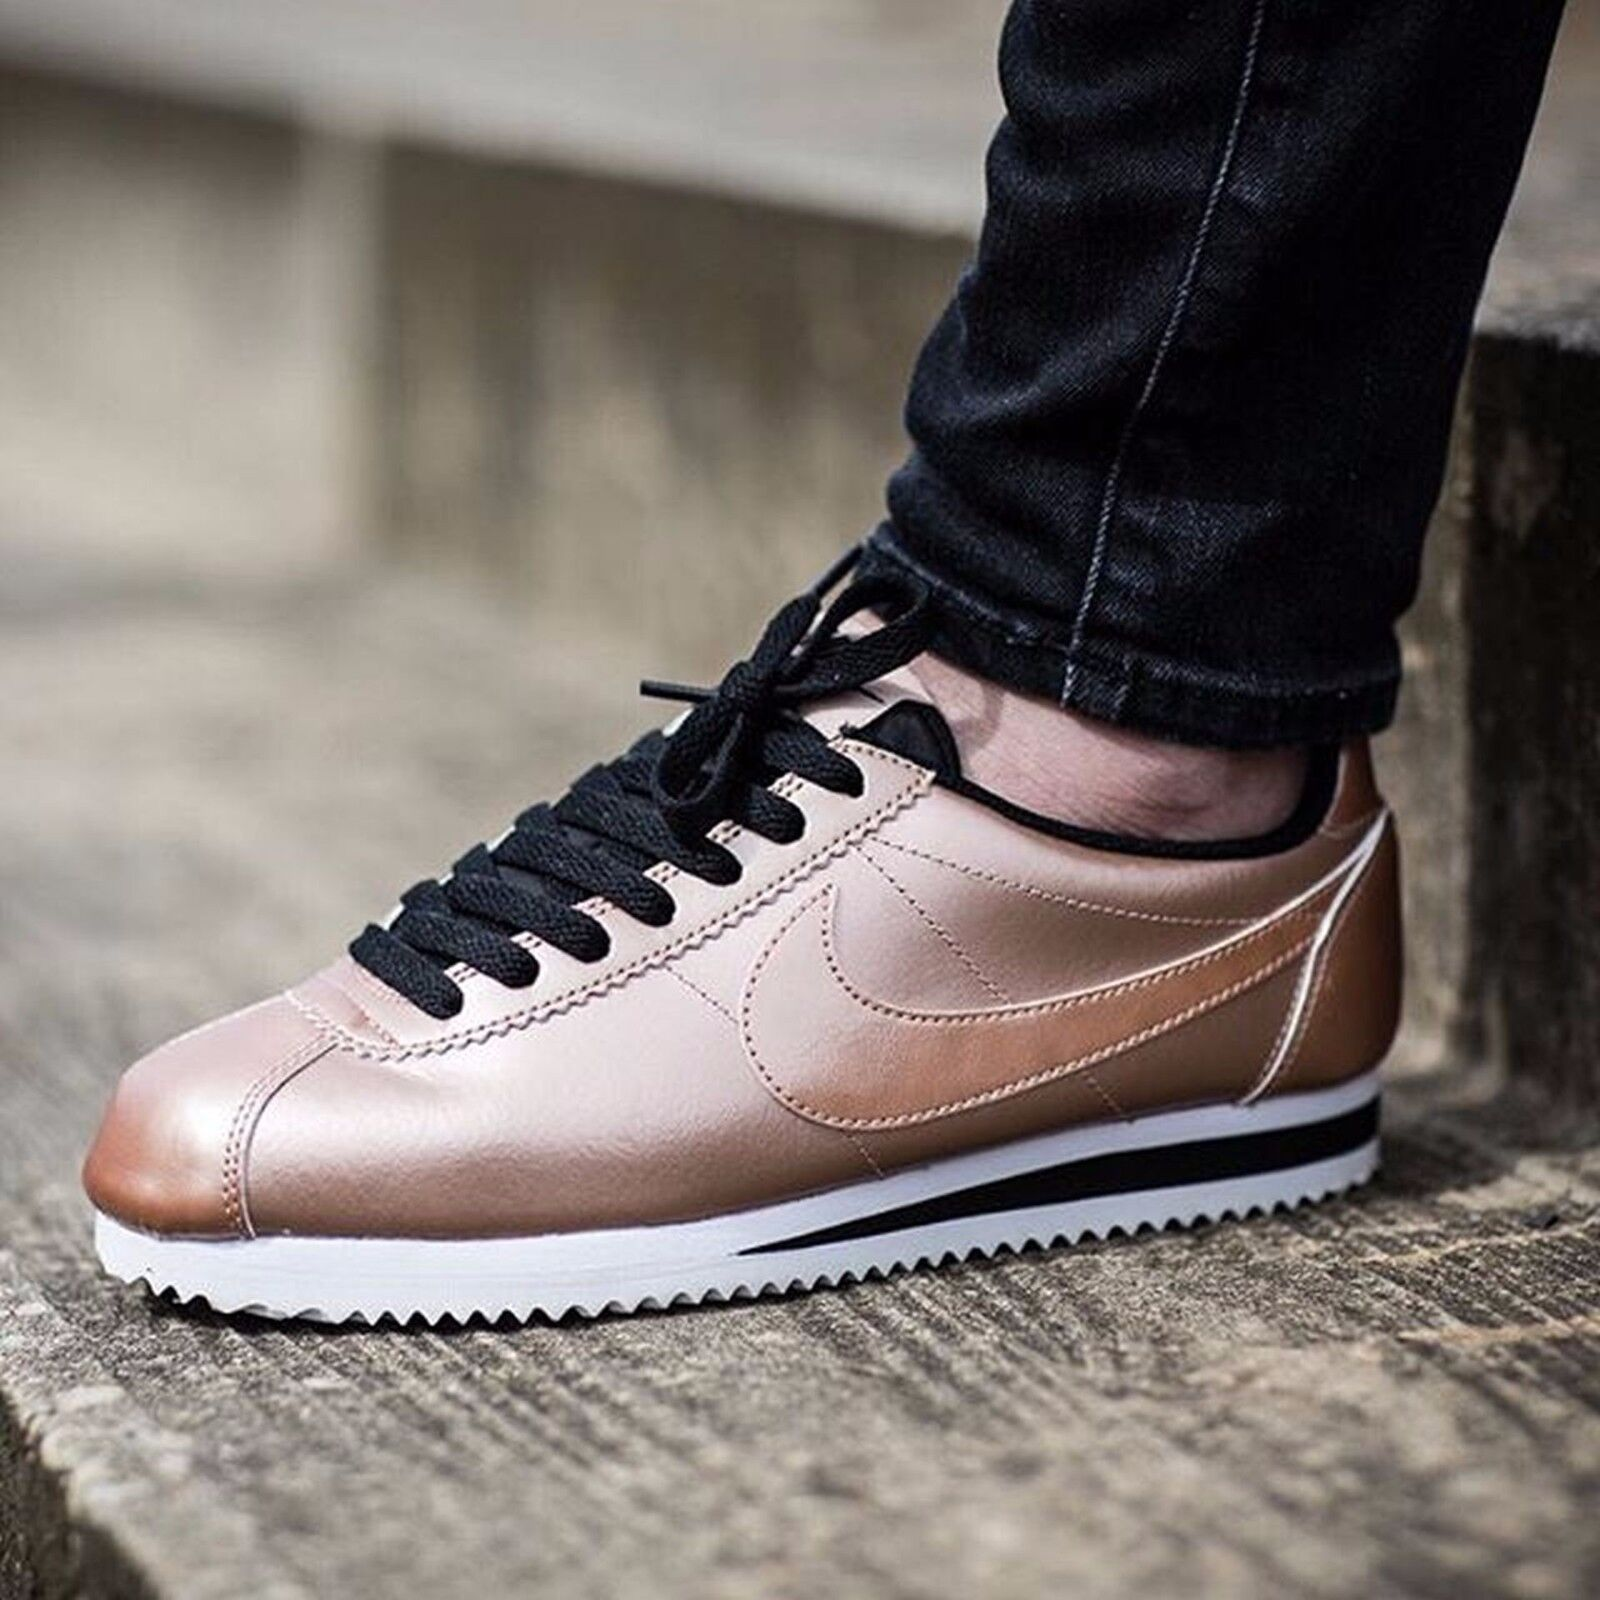 Nike Cortez Classic Leather Metallic Bronze Womens shoes Size 10 807471-990